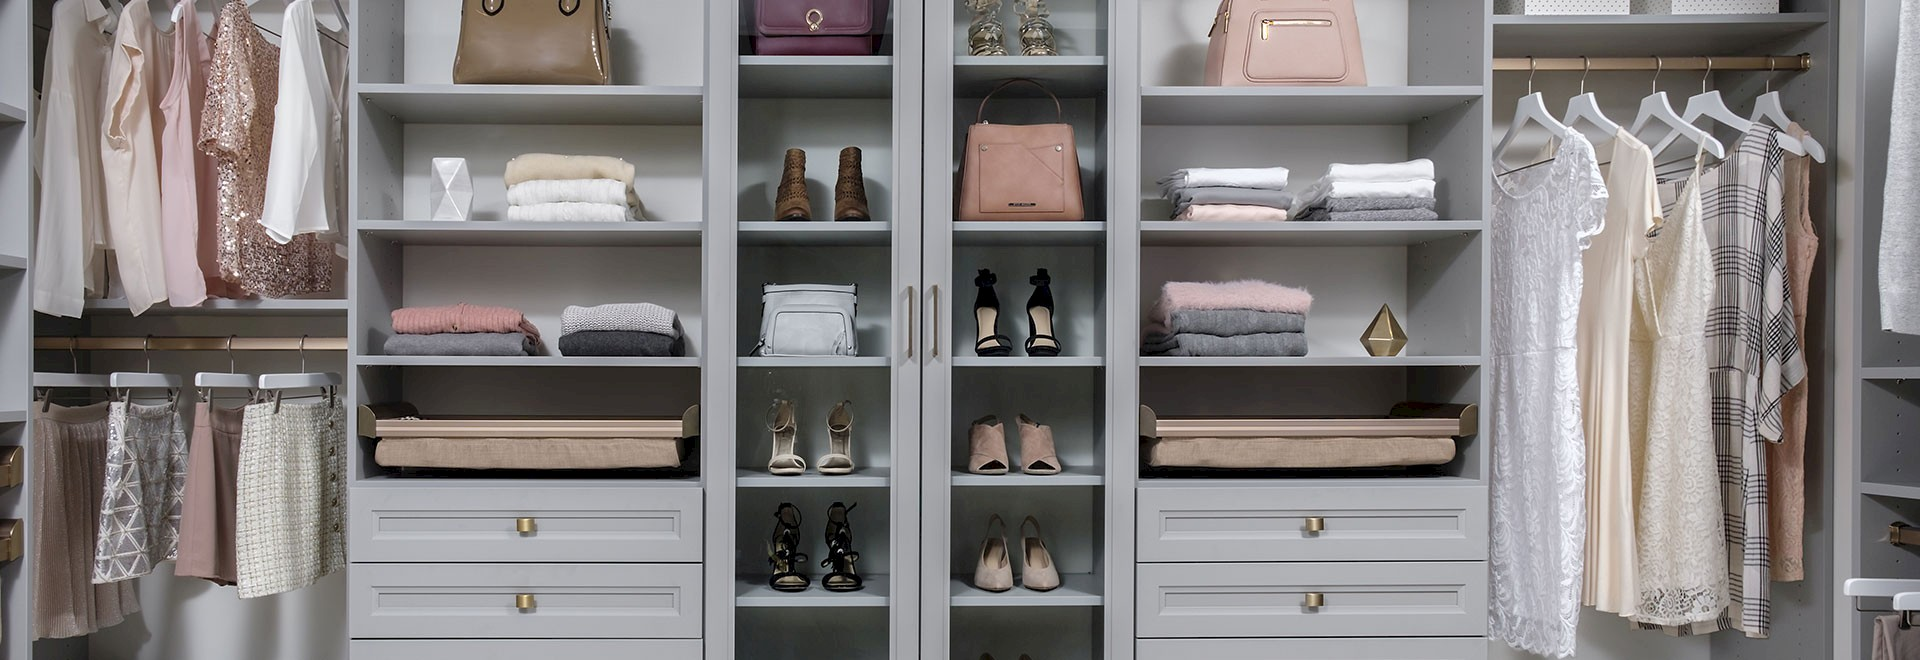 Custom Closets and Home Storage Systems